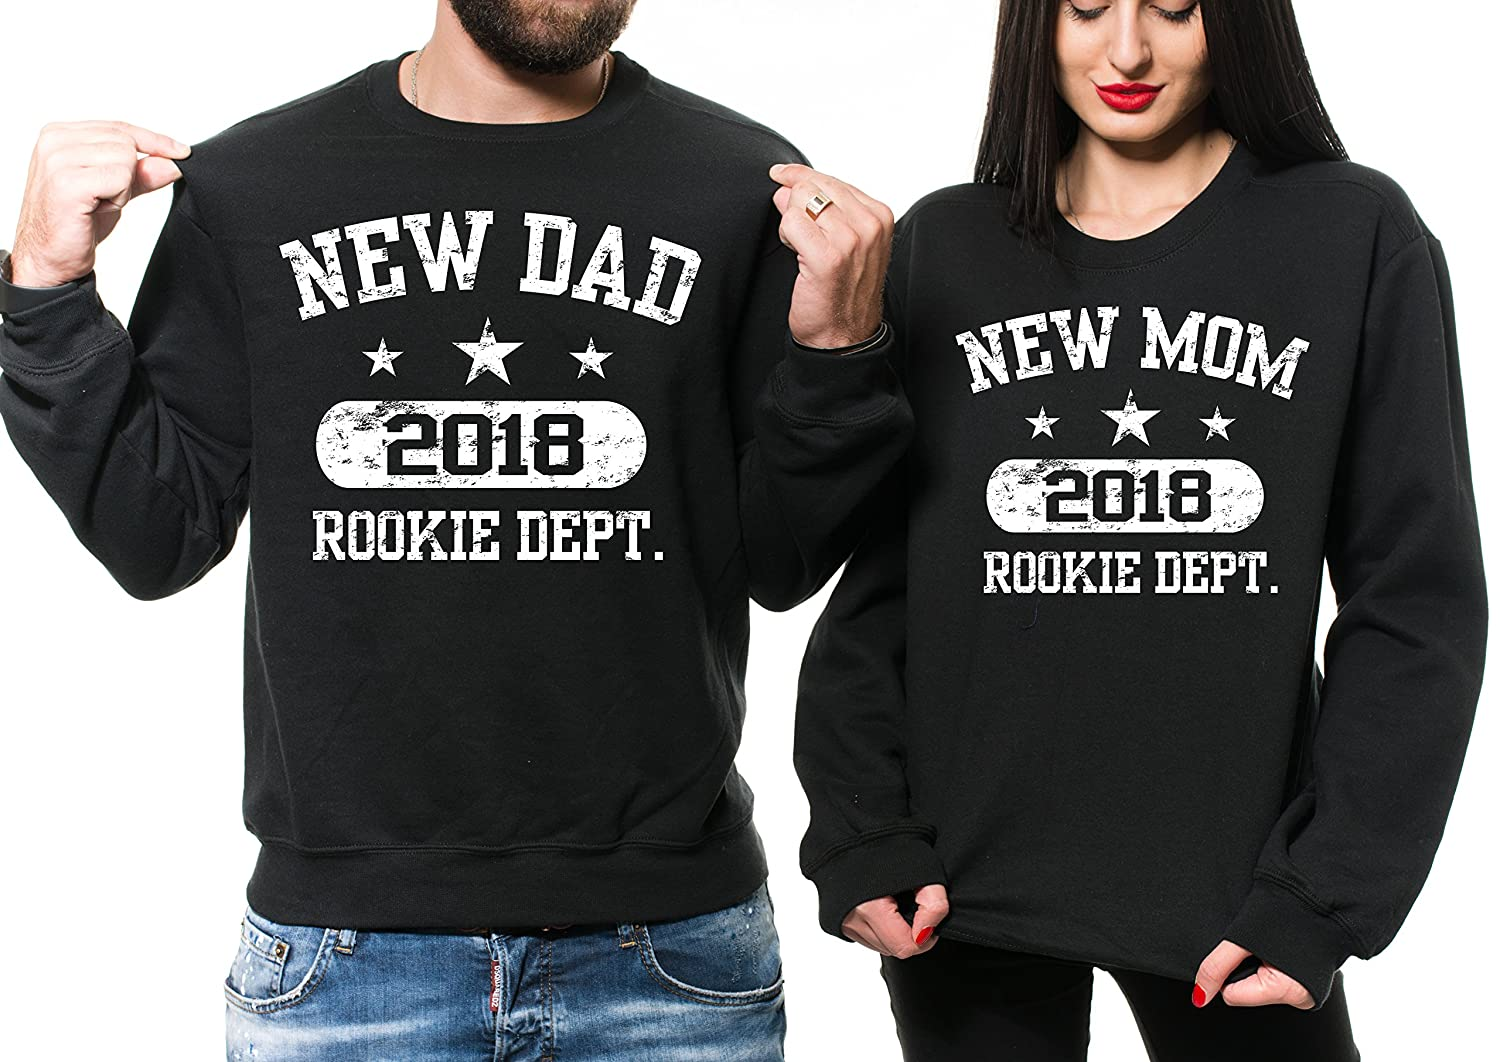 Silk Road Tees Männer New Mom New Dad 2018 Baby-Annoucet New Baby ...